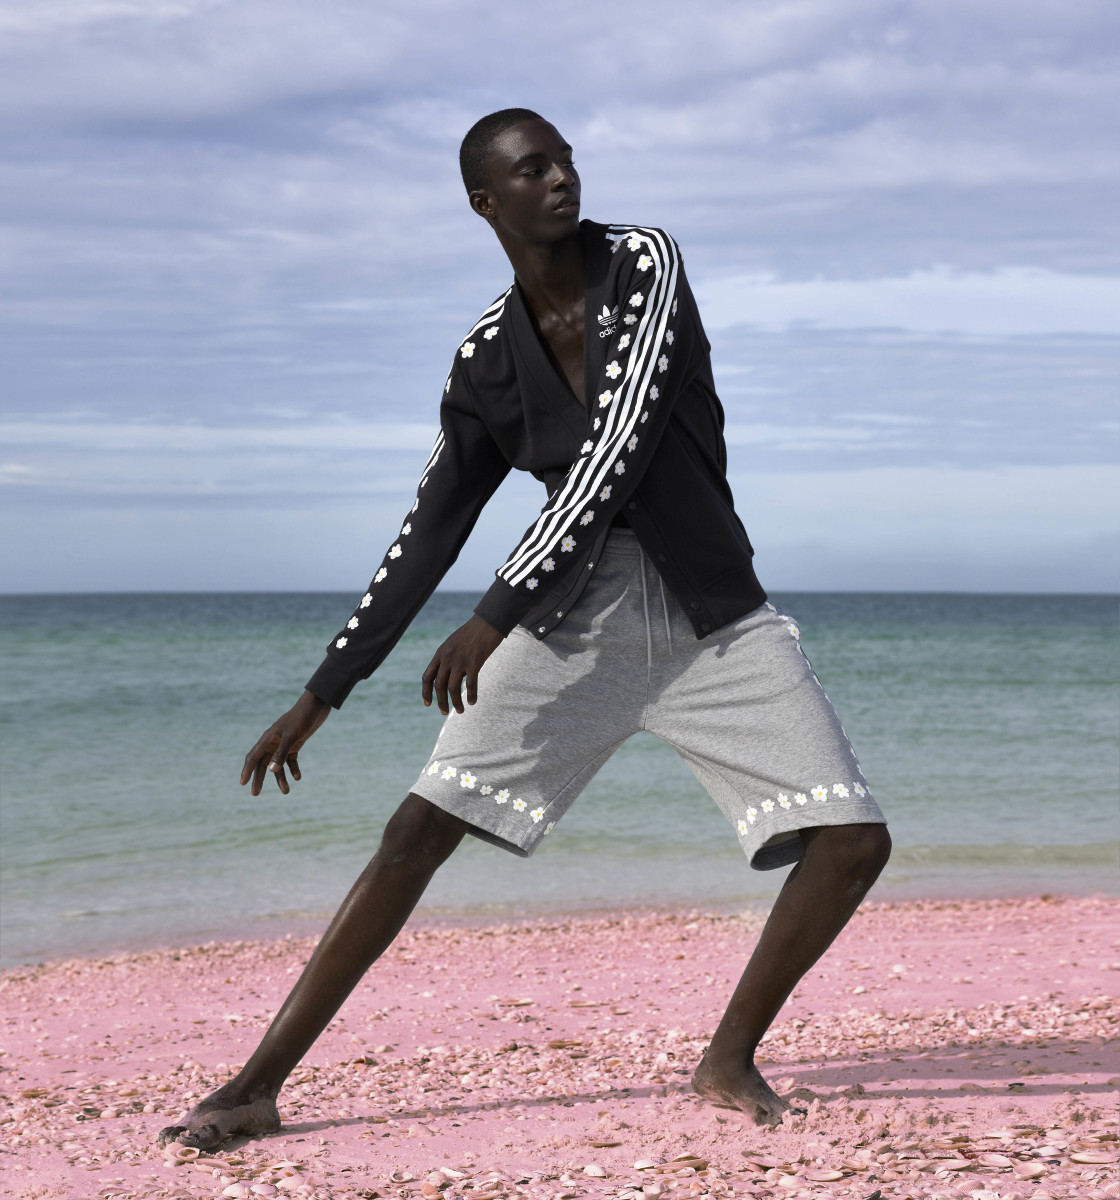 pharrell-adidas-pink-beach-drop-2-collection-02.jpg